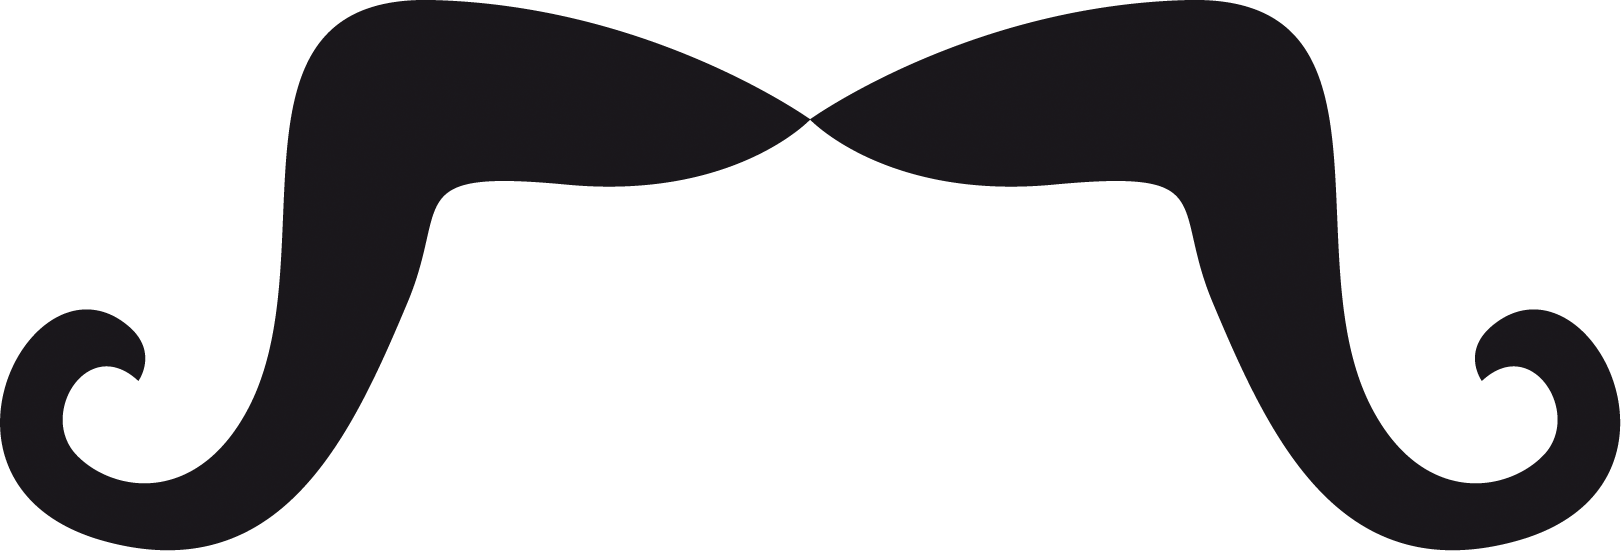 mustache png french